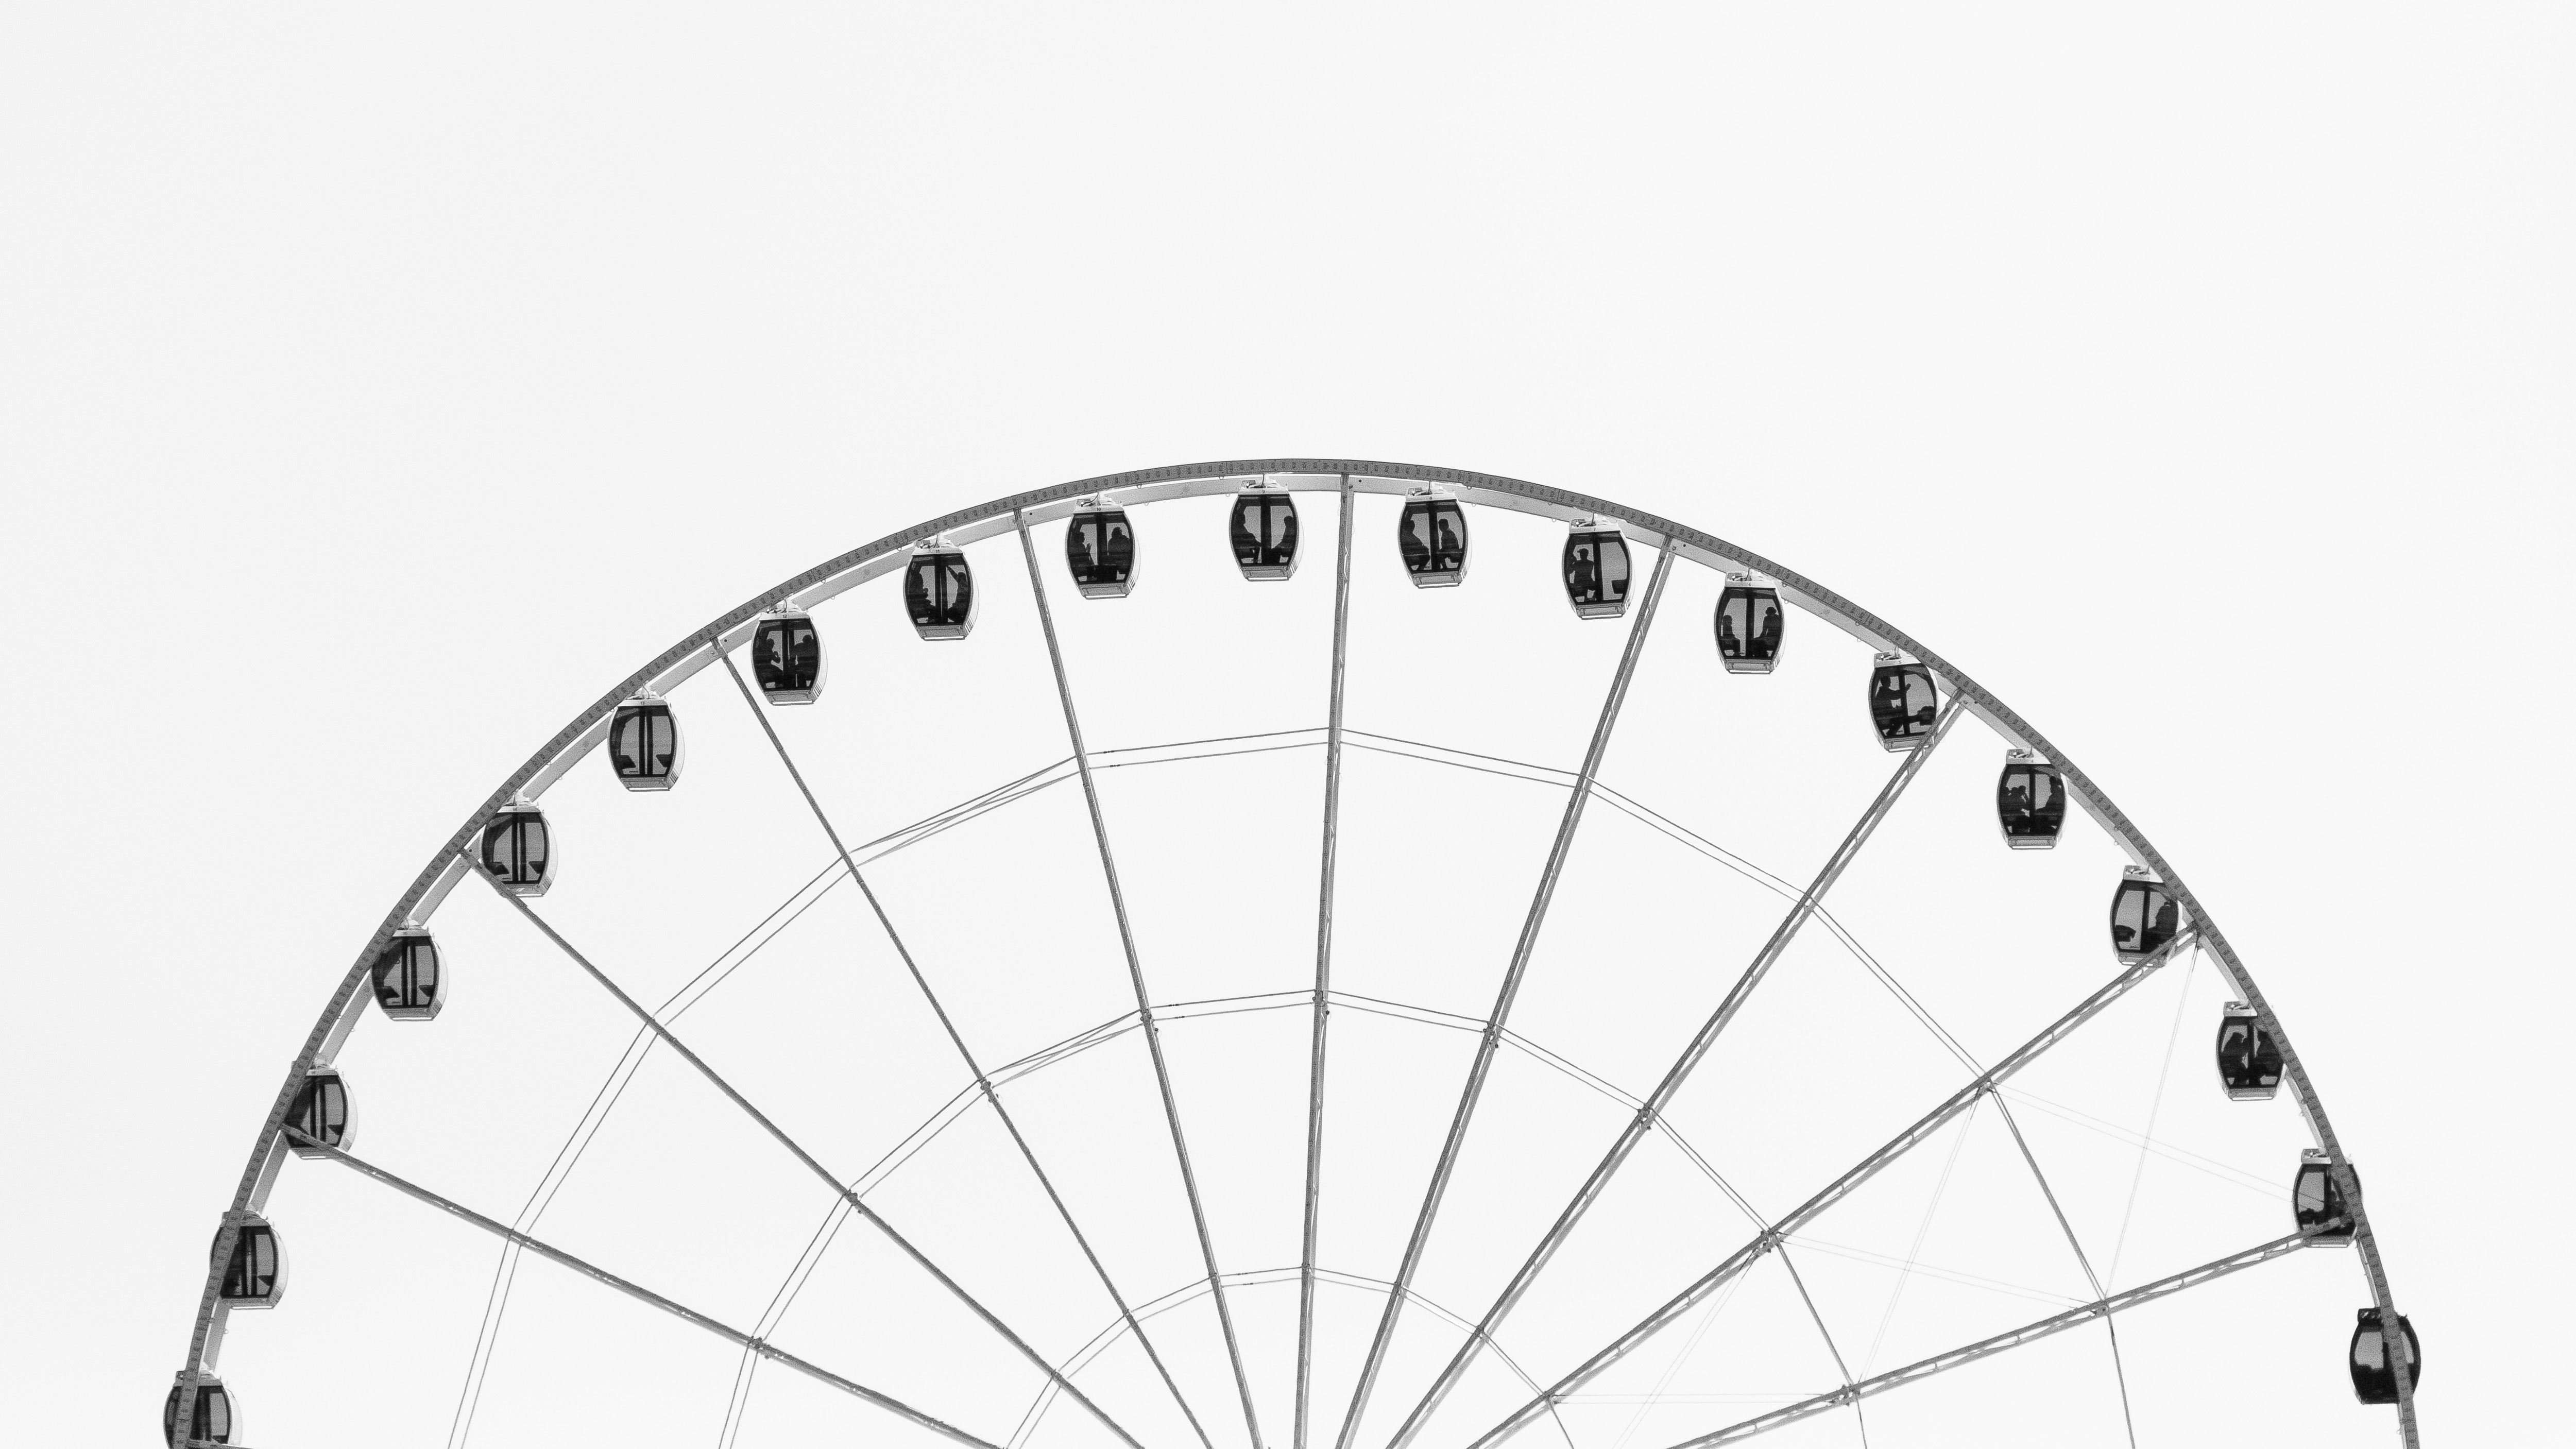 Wheel of Fortune, white and black, gondola, ferris wheel, sky, fun, entertainment, ride, amusement park